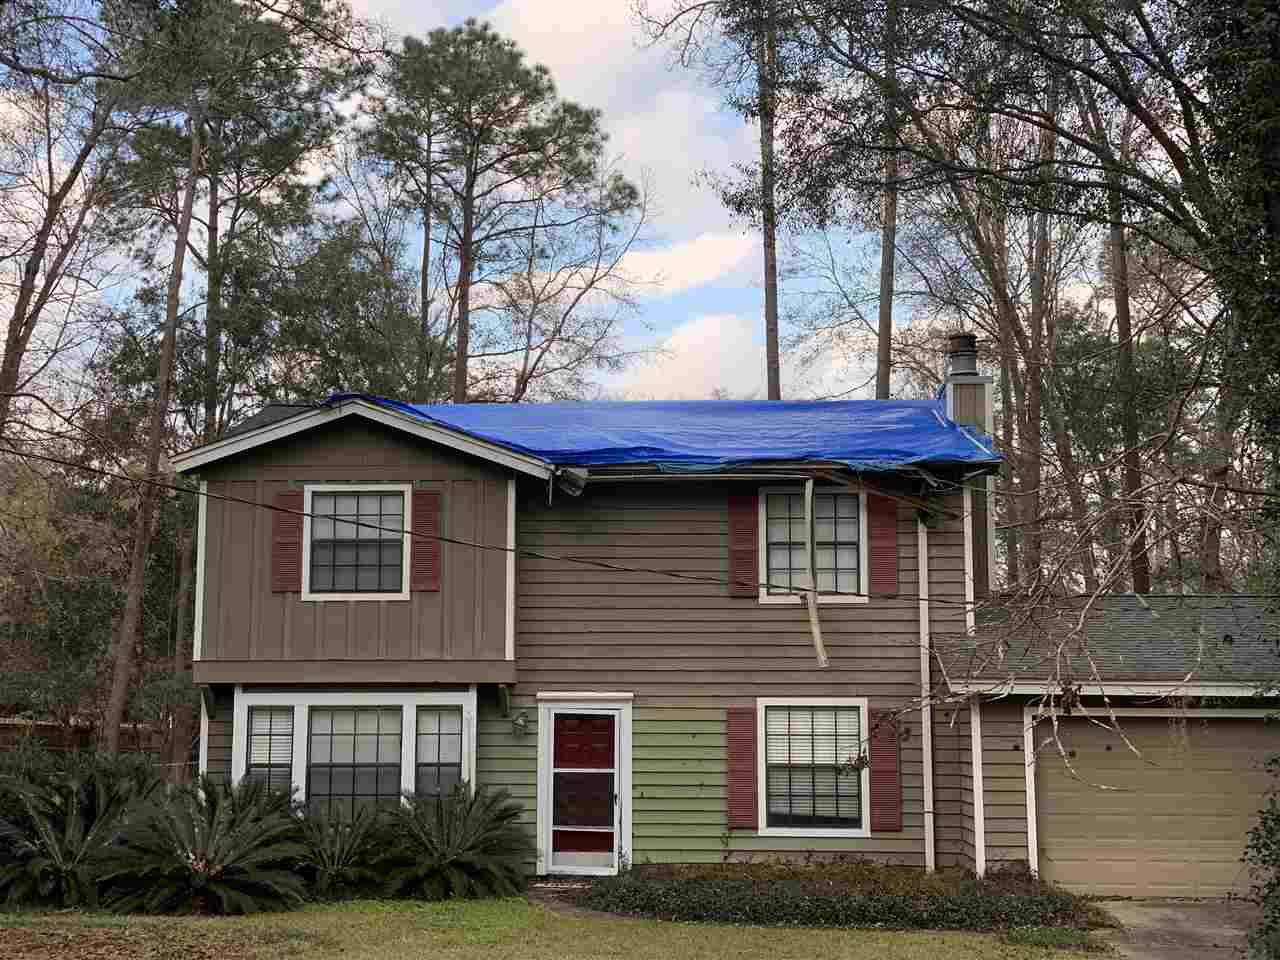 TLC needed. Great location in the lovely subdivision of Killearn Acres. 4bd/2.5ba; 1869 sf; 2 car garage; 0.46 acre lot. Great school zone.